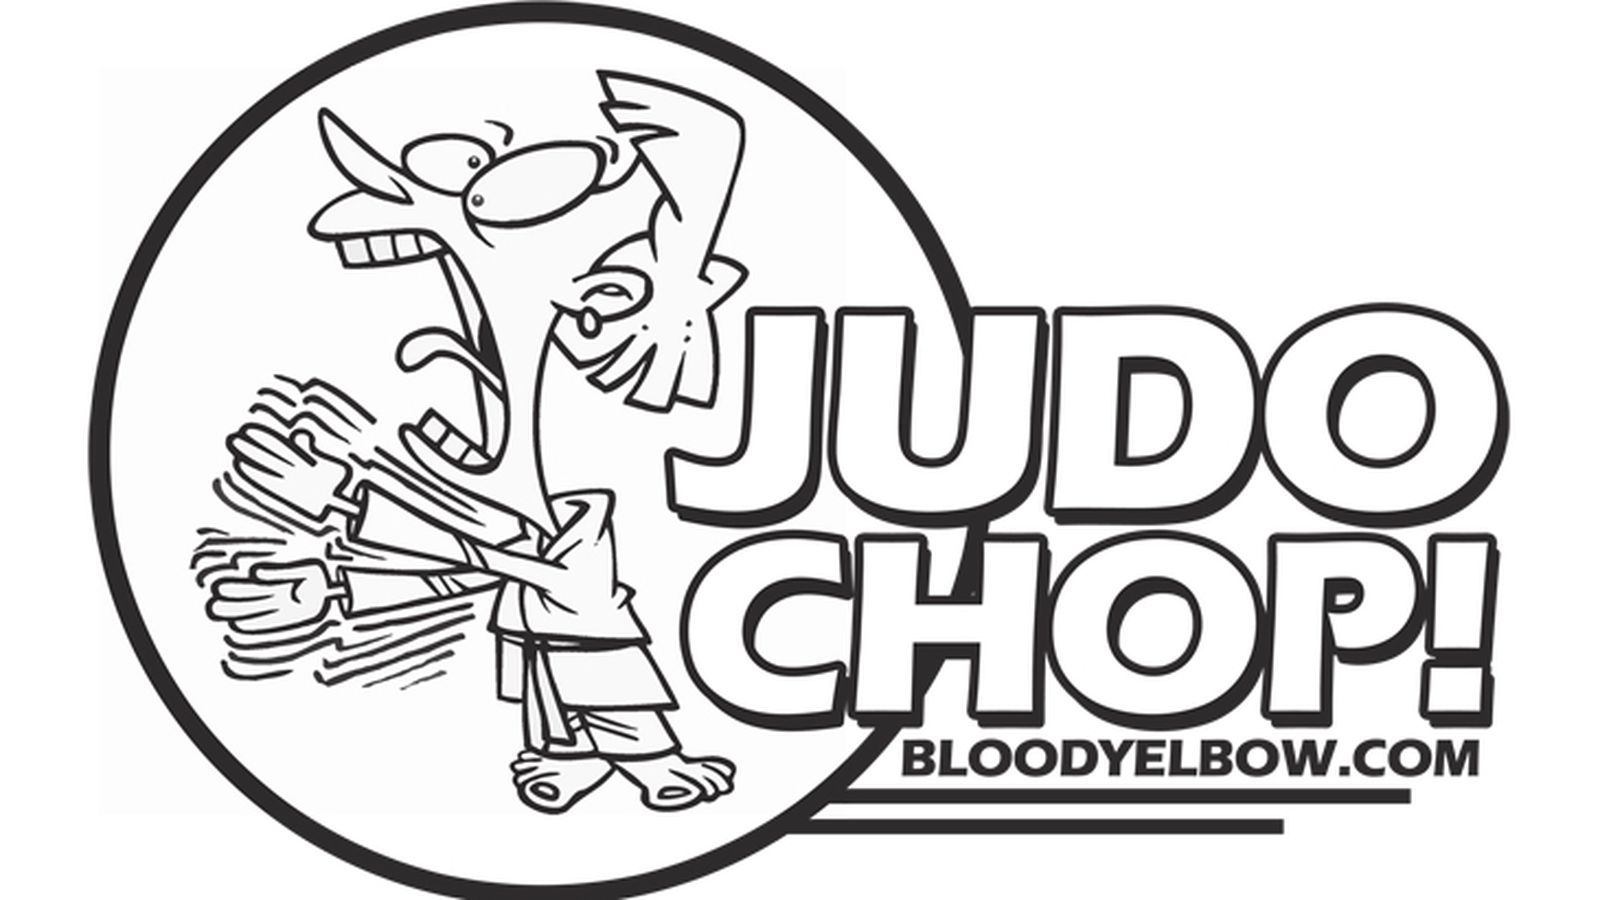 The Bloody Elbow Judo Chop